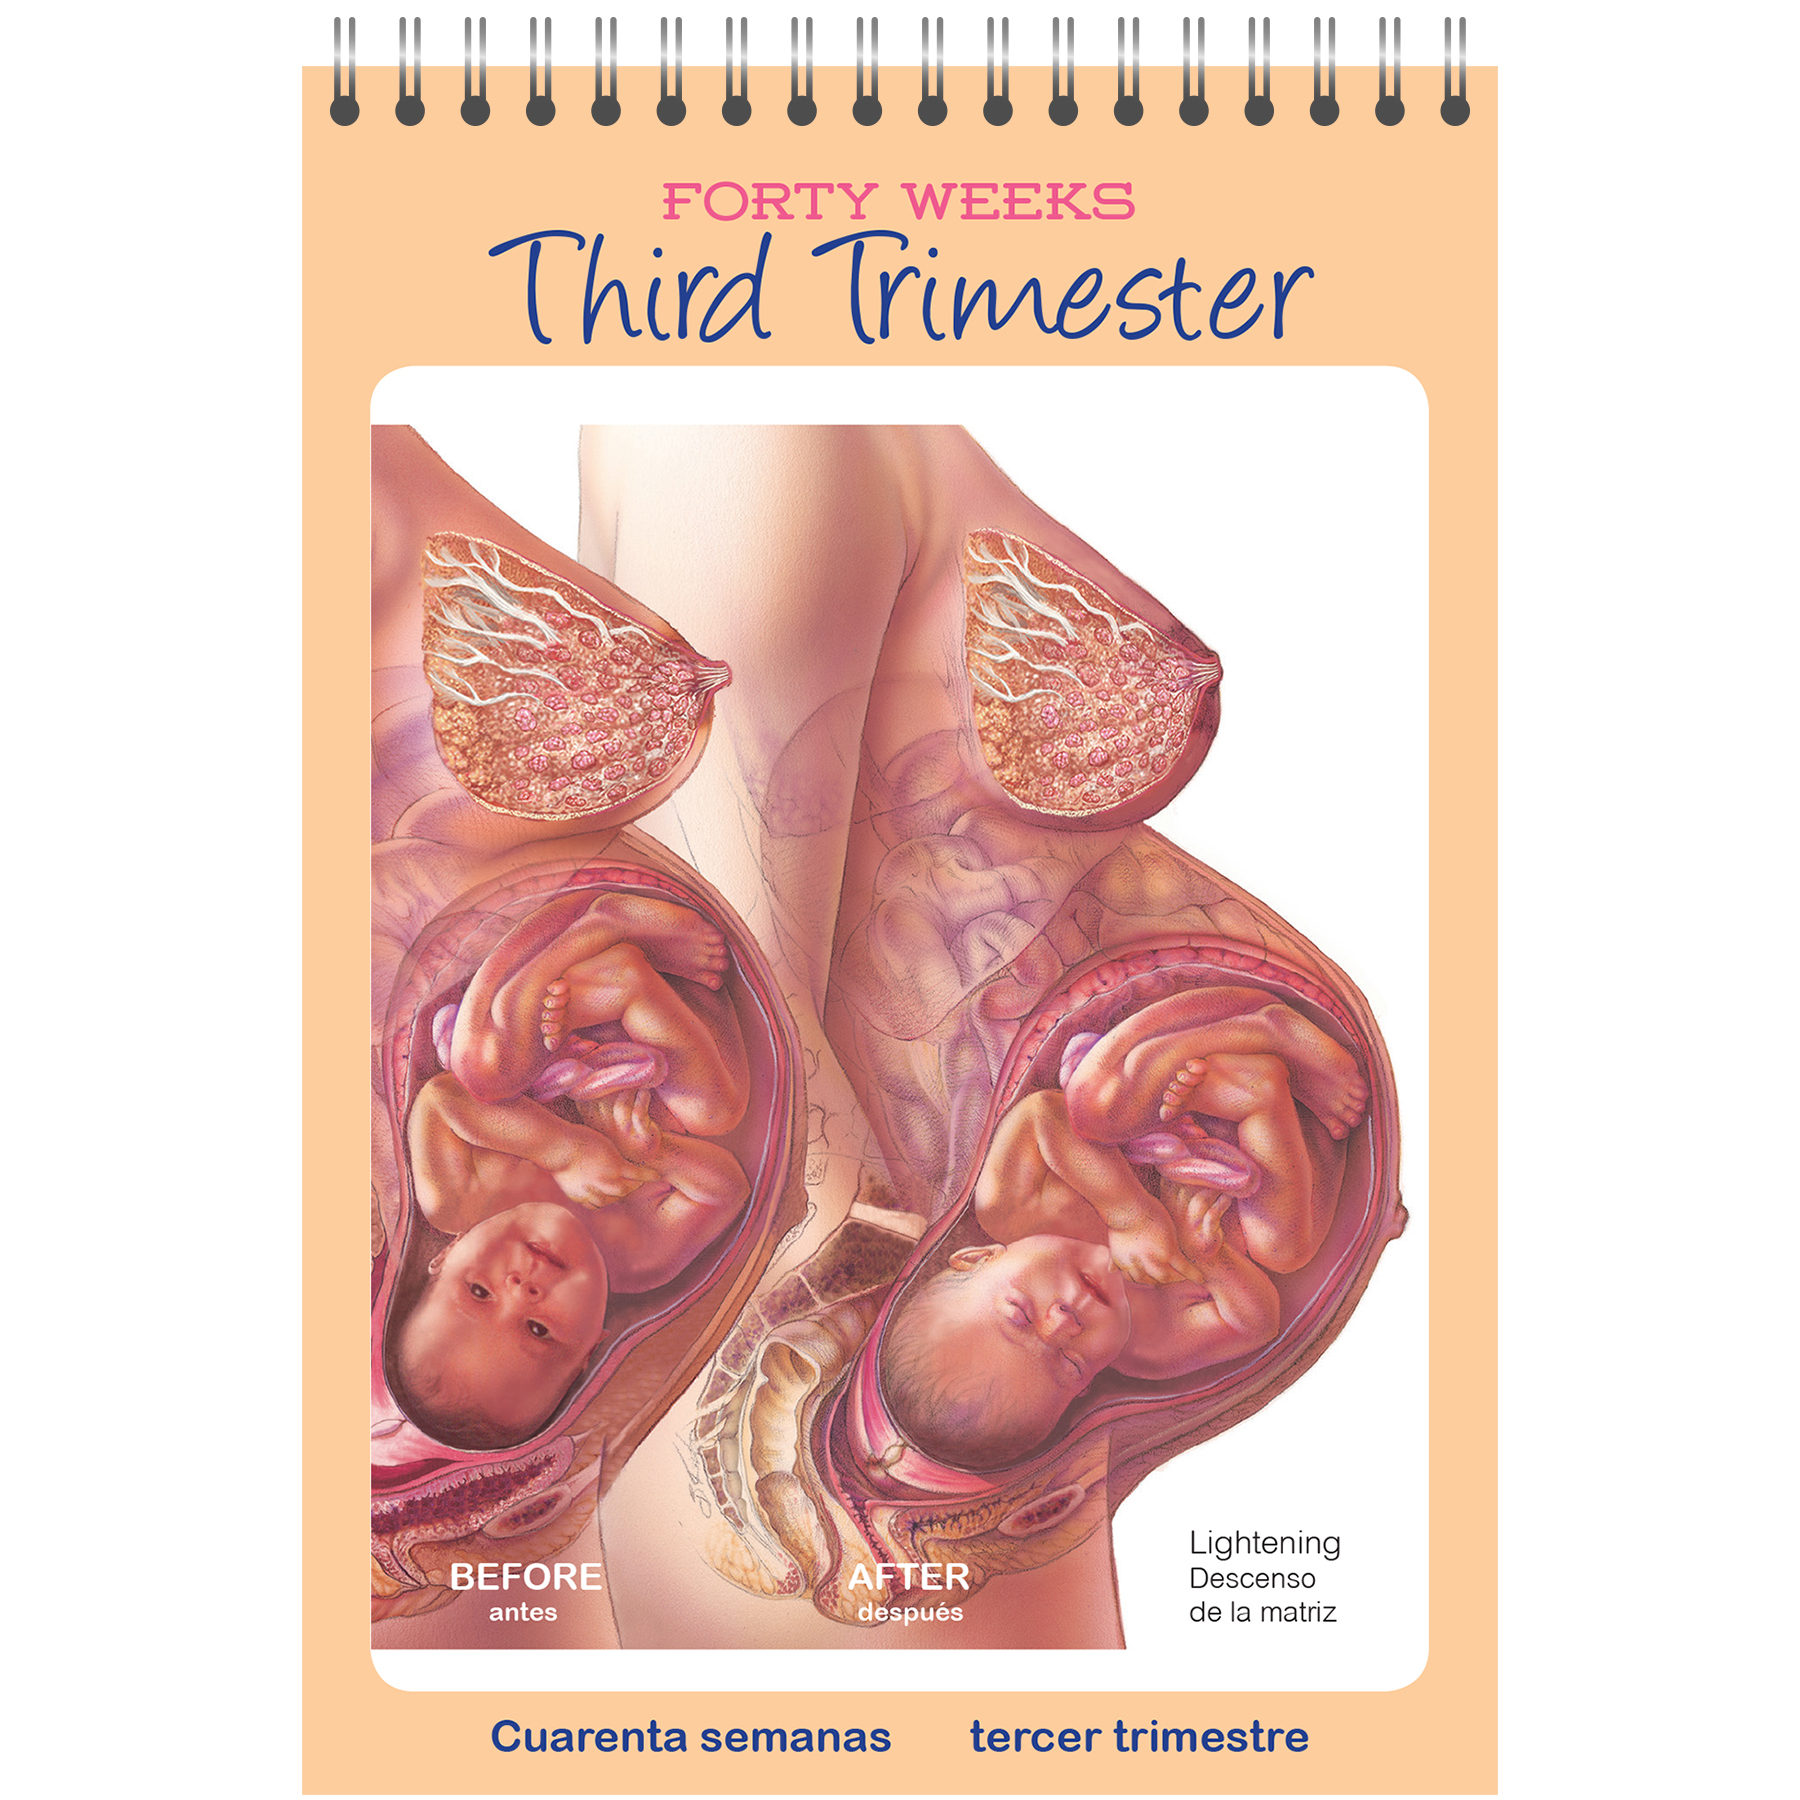 pocket-sized guide to pregnancy third trimester image, details changes  in woman's body during